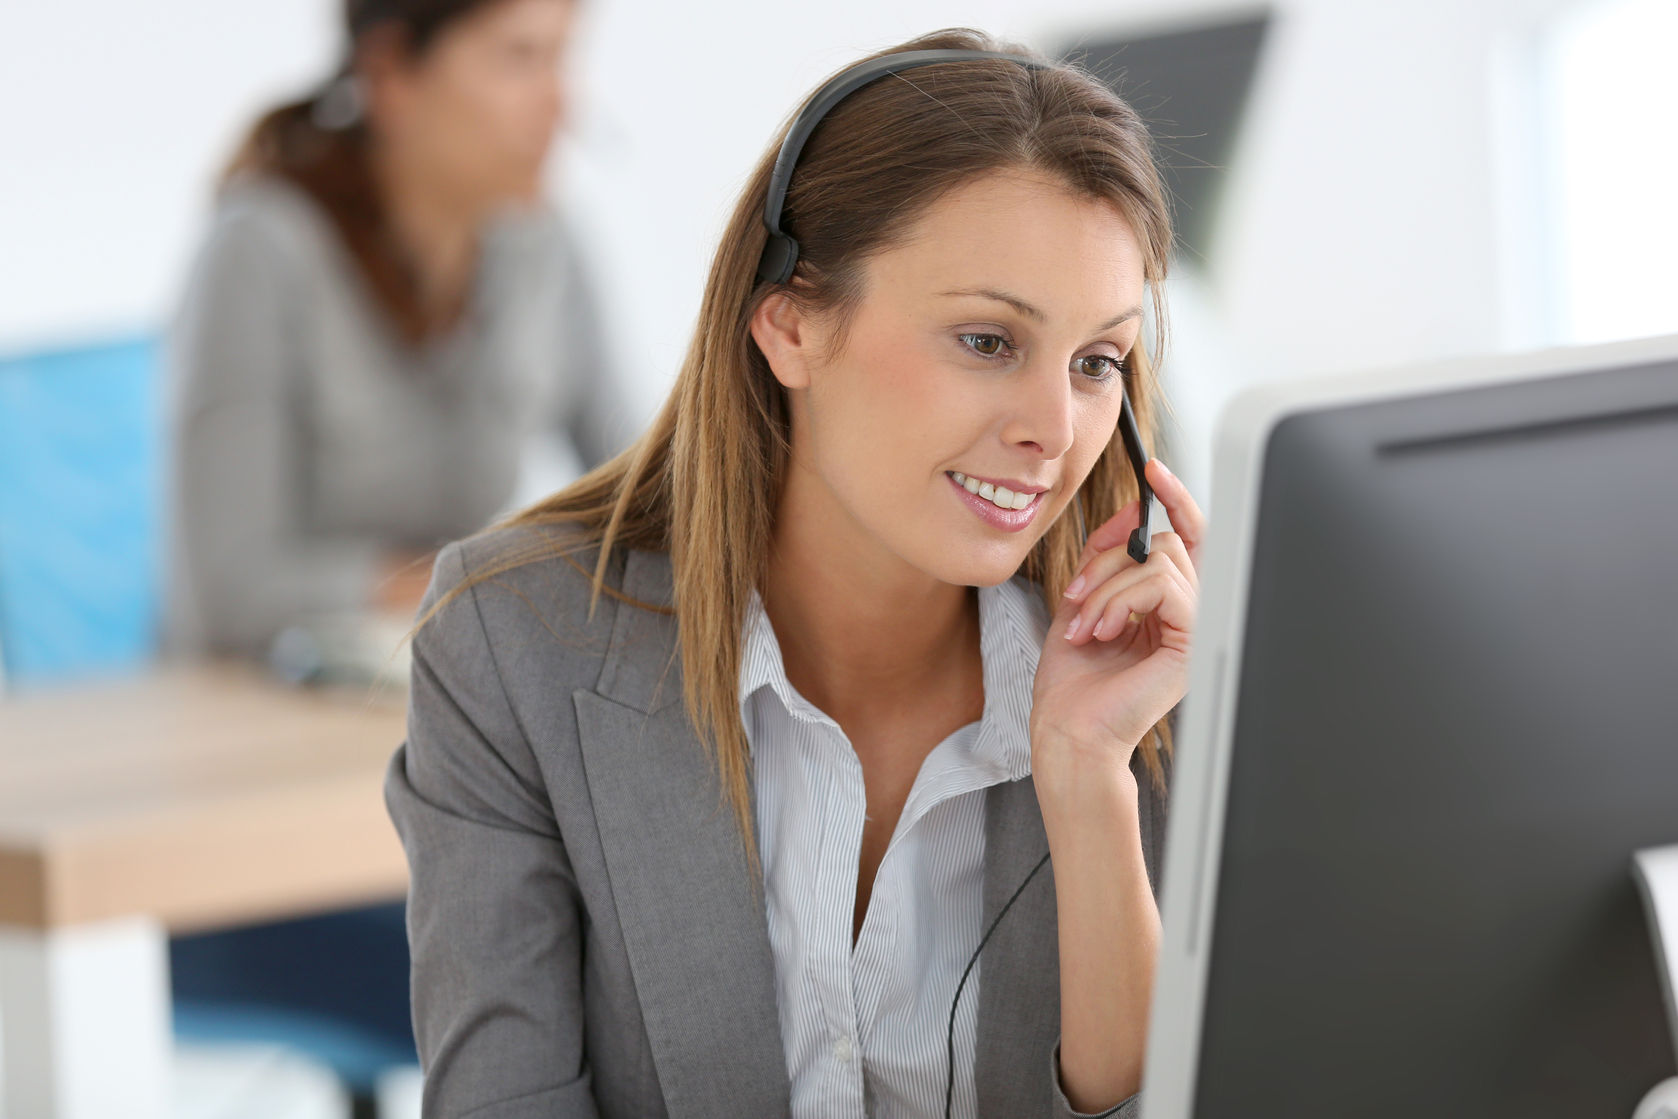 smiling customer service representative at work|feng shui flexibility|female hands with pen writing on notebook